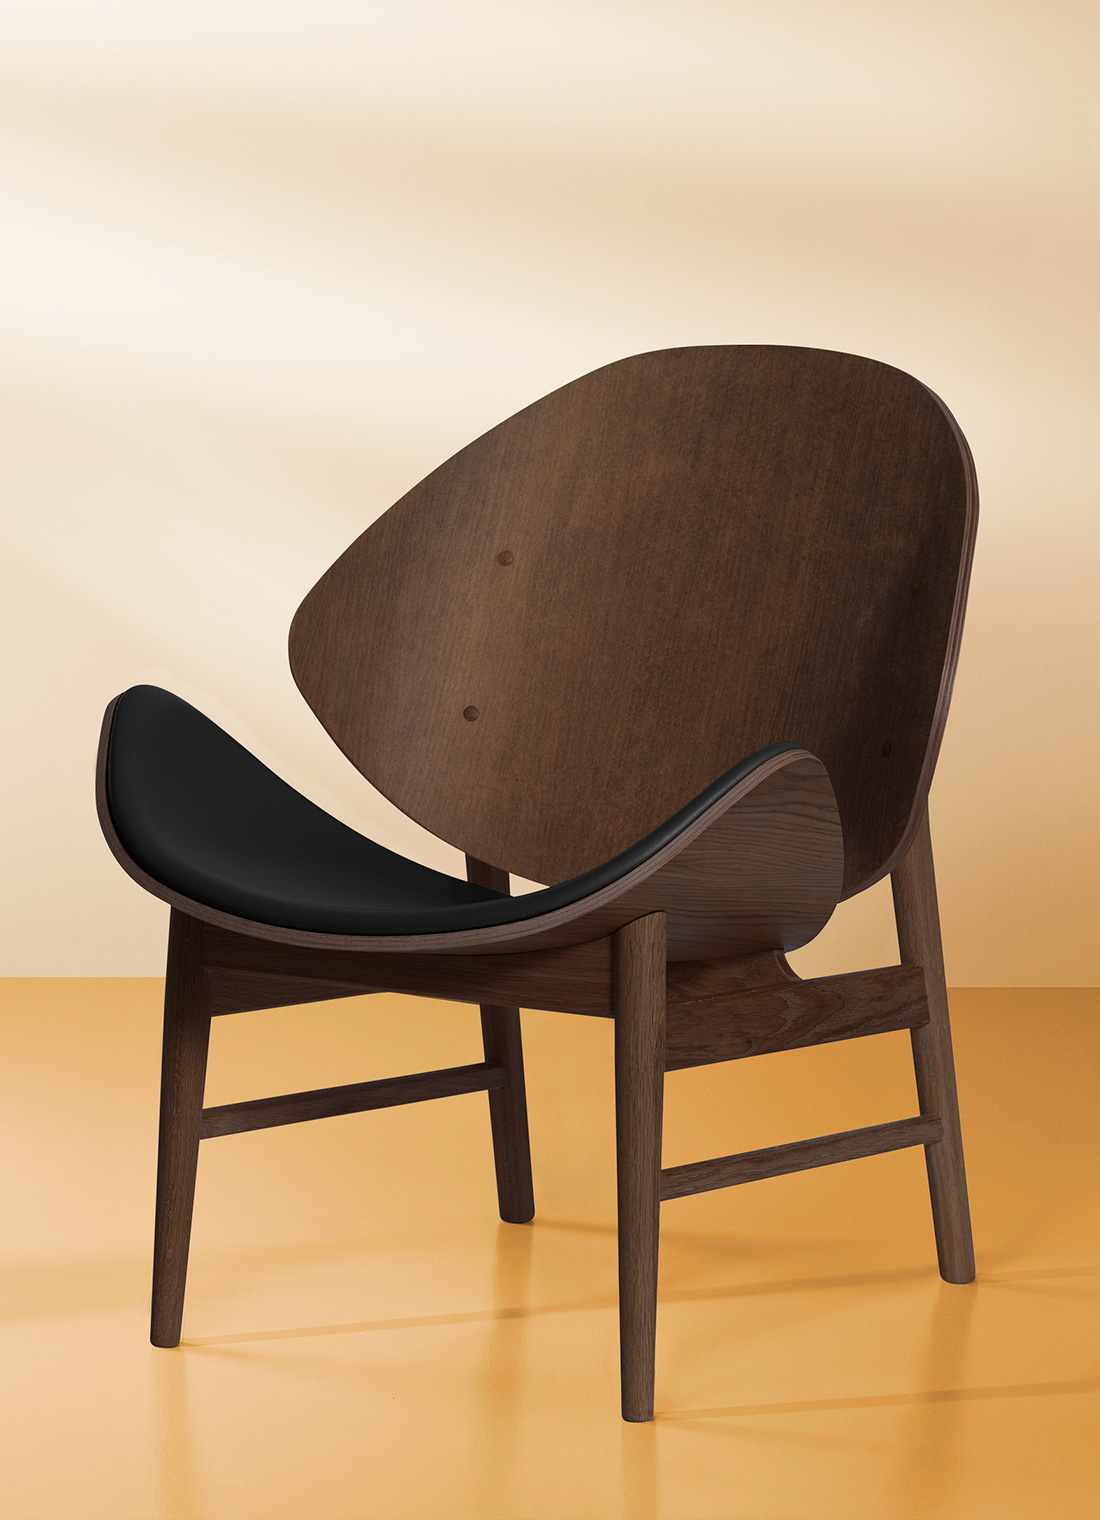 The orange lounge chair in smoked oak and black leather